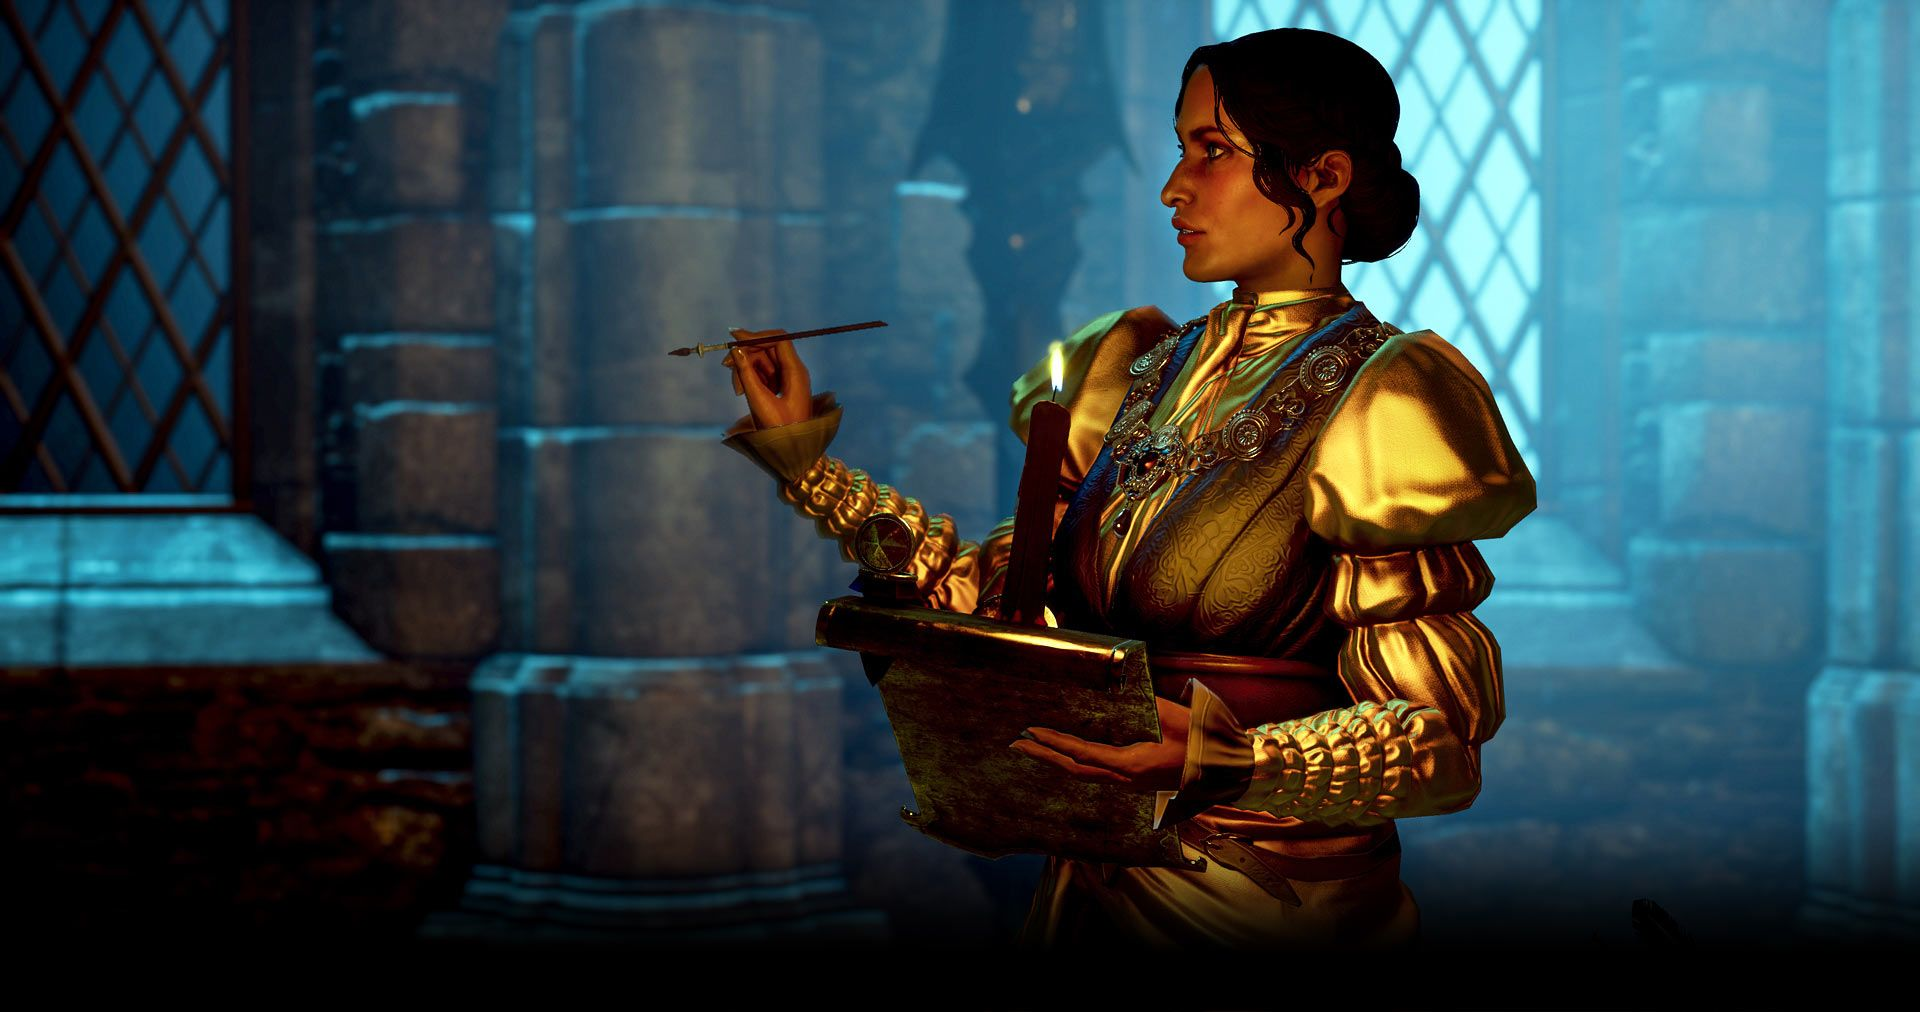 dragon age josephine montilyet - Google Search | The Waterfall in